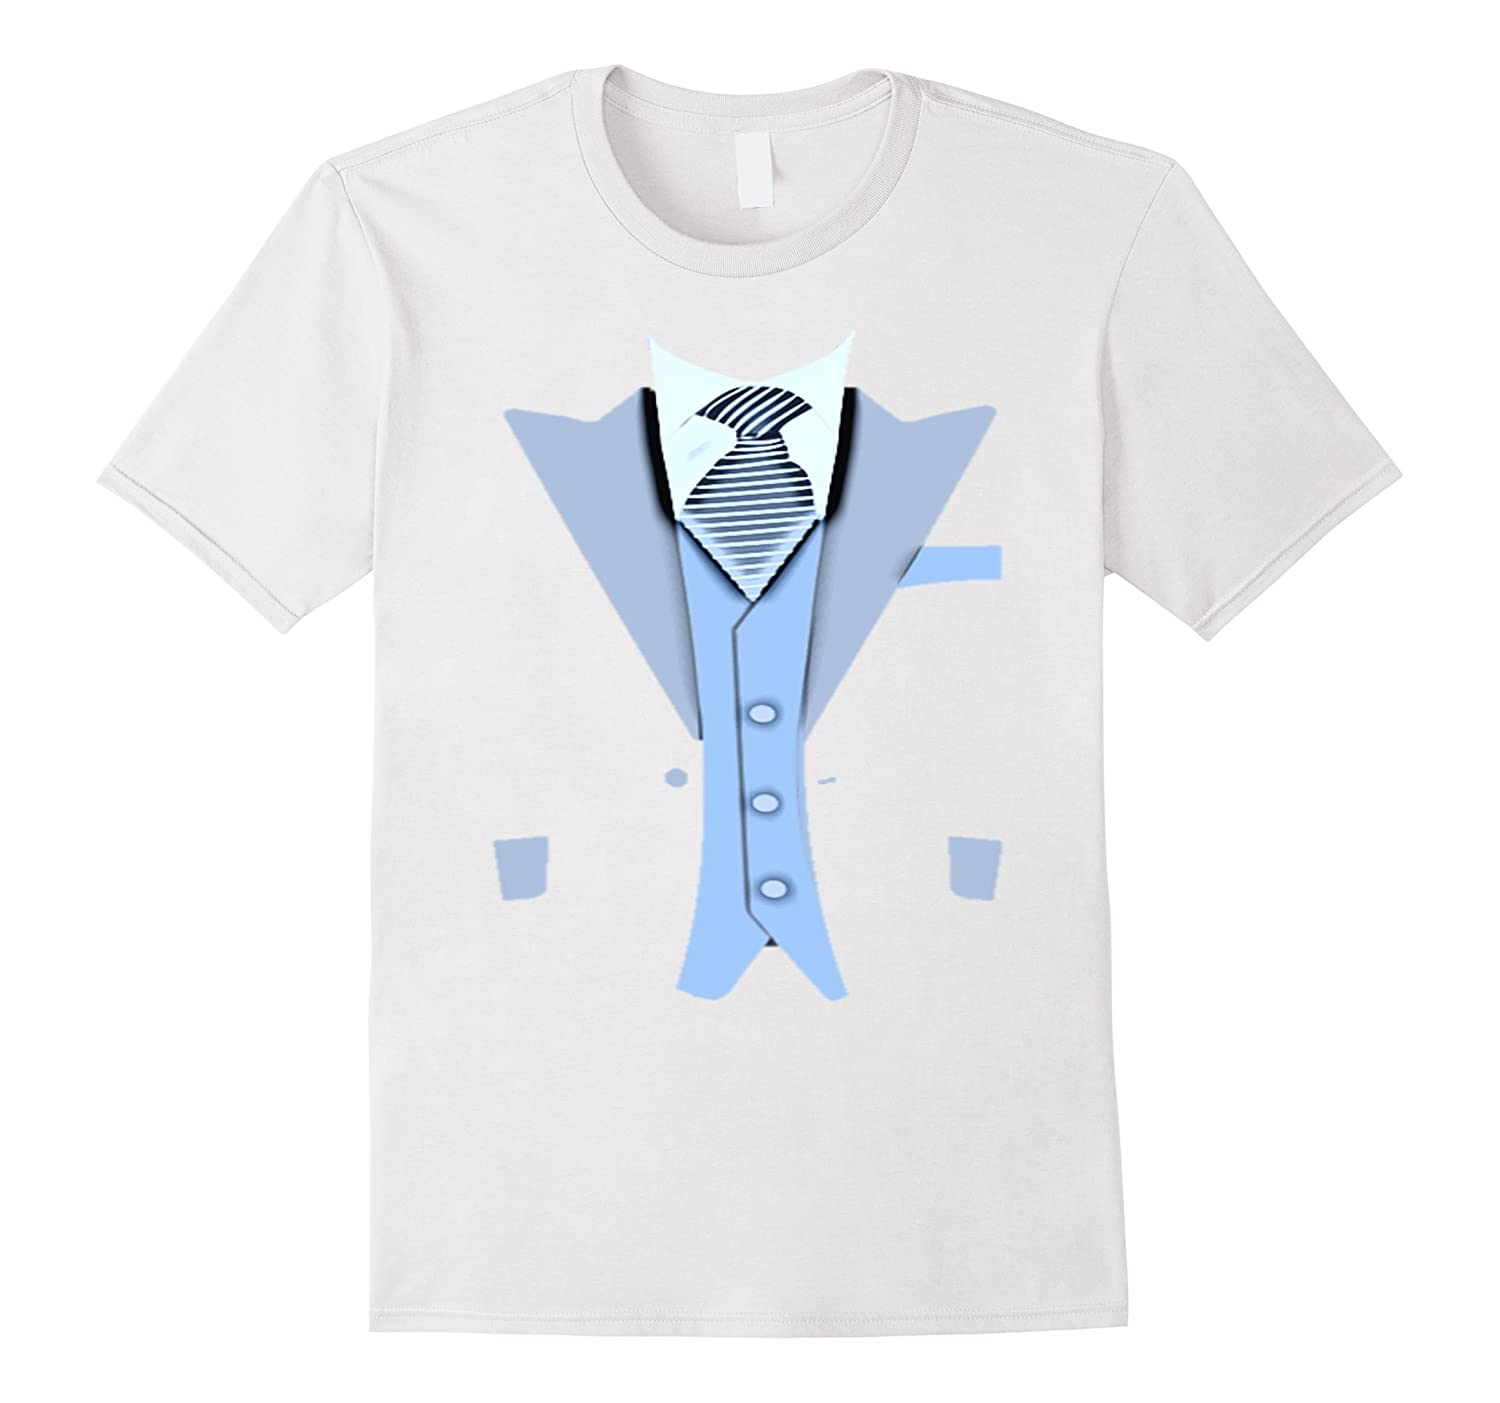 Funny Black Blue Tuxedo Suit TShirt with Vest and tie-4LVS